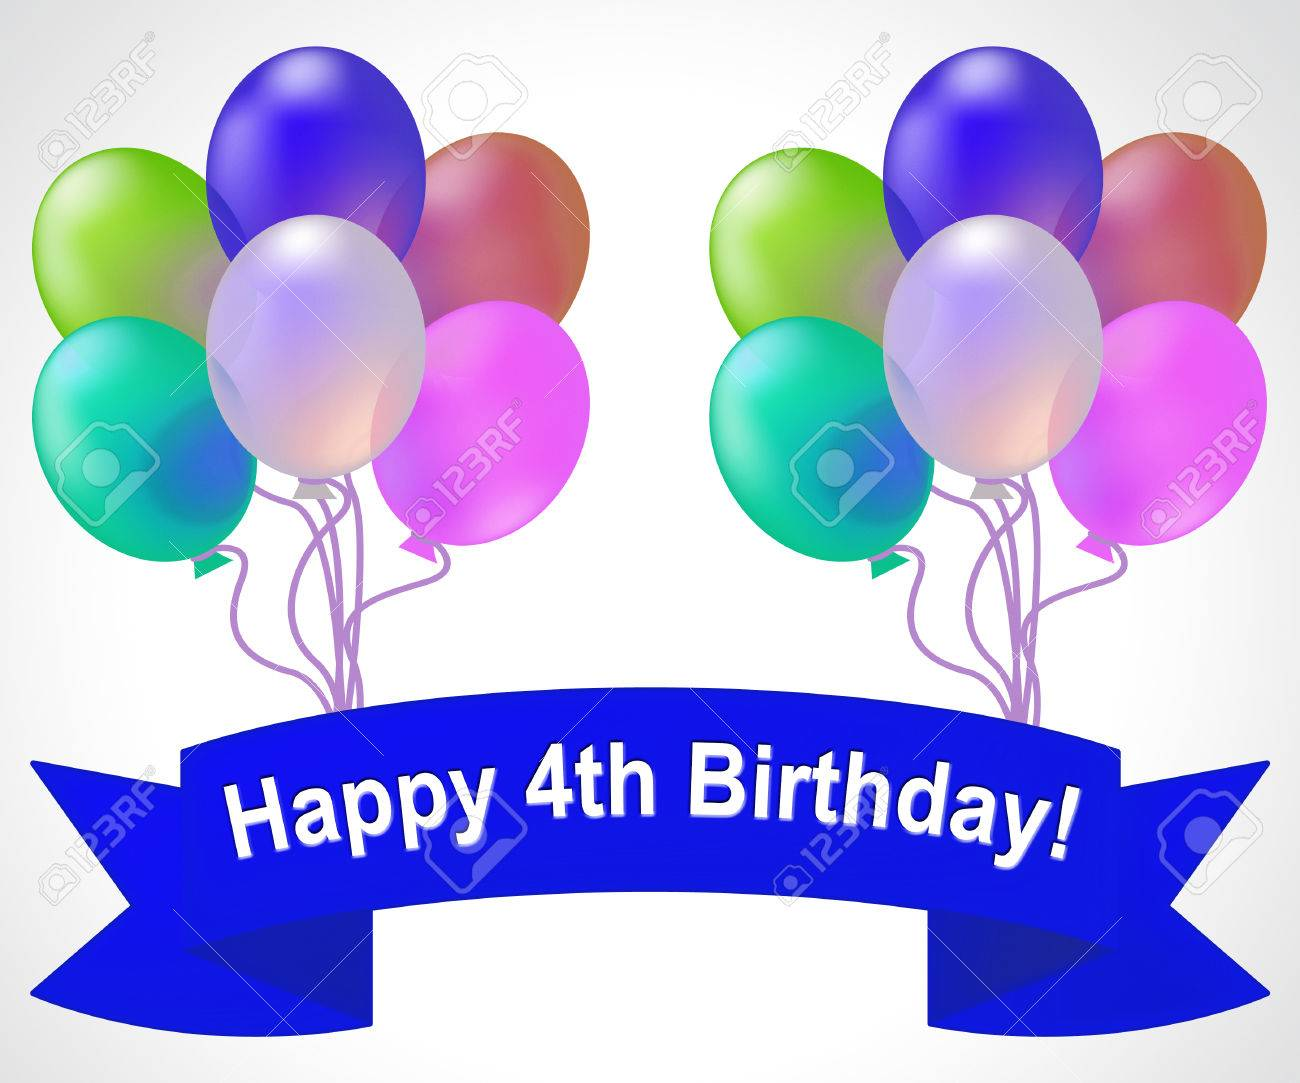 Happy Fourth Birthday Balloons Means 4th Party Celebration 3d Illustration Stock